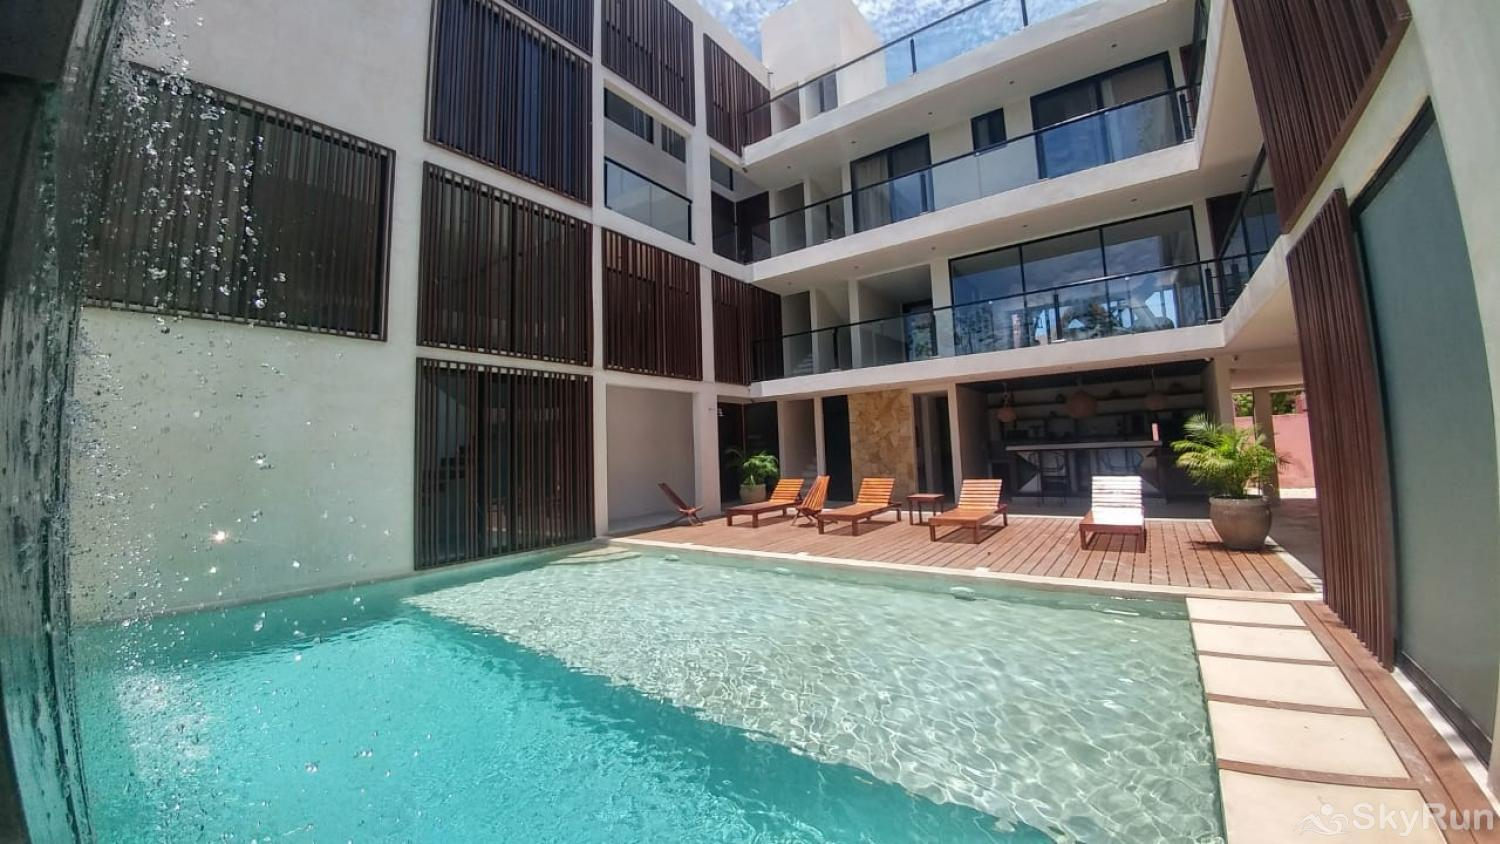 Spacious Condo Trinity Tulum FREE bikes Aldea Zama  302 2nd Outdoor Pool in this complex with luxury Amenities